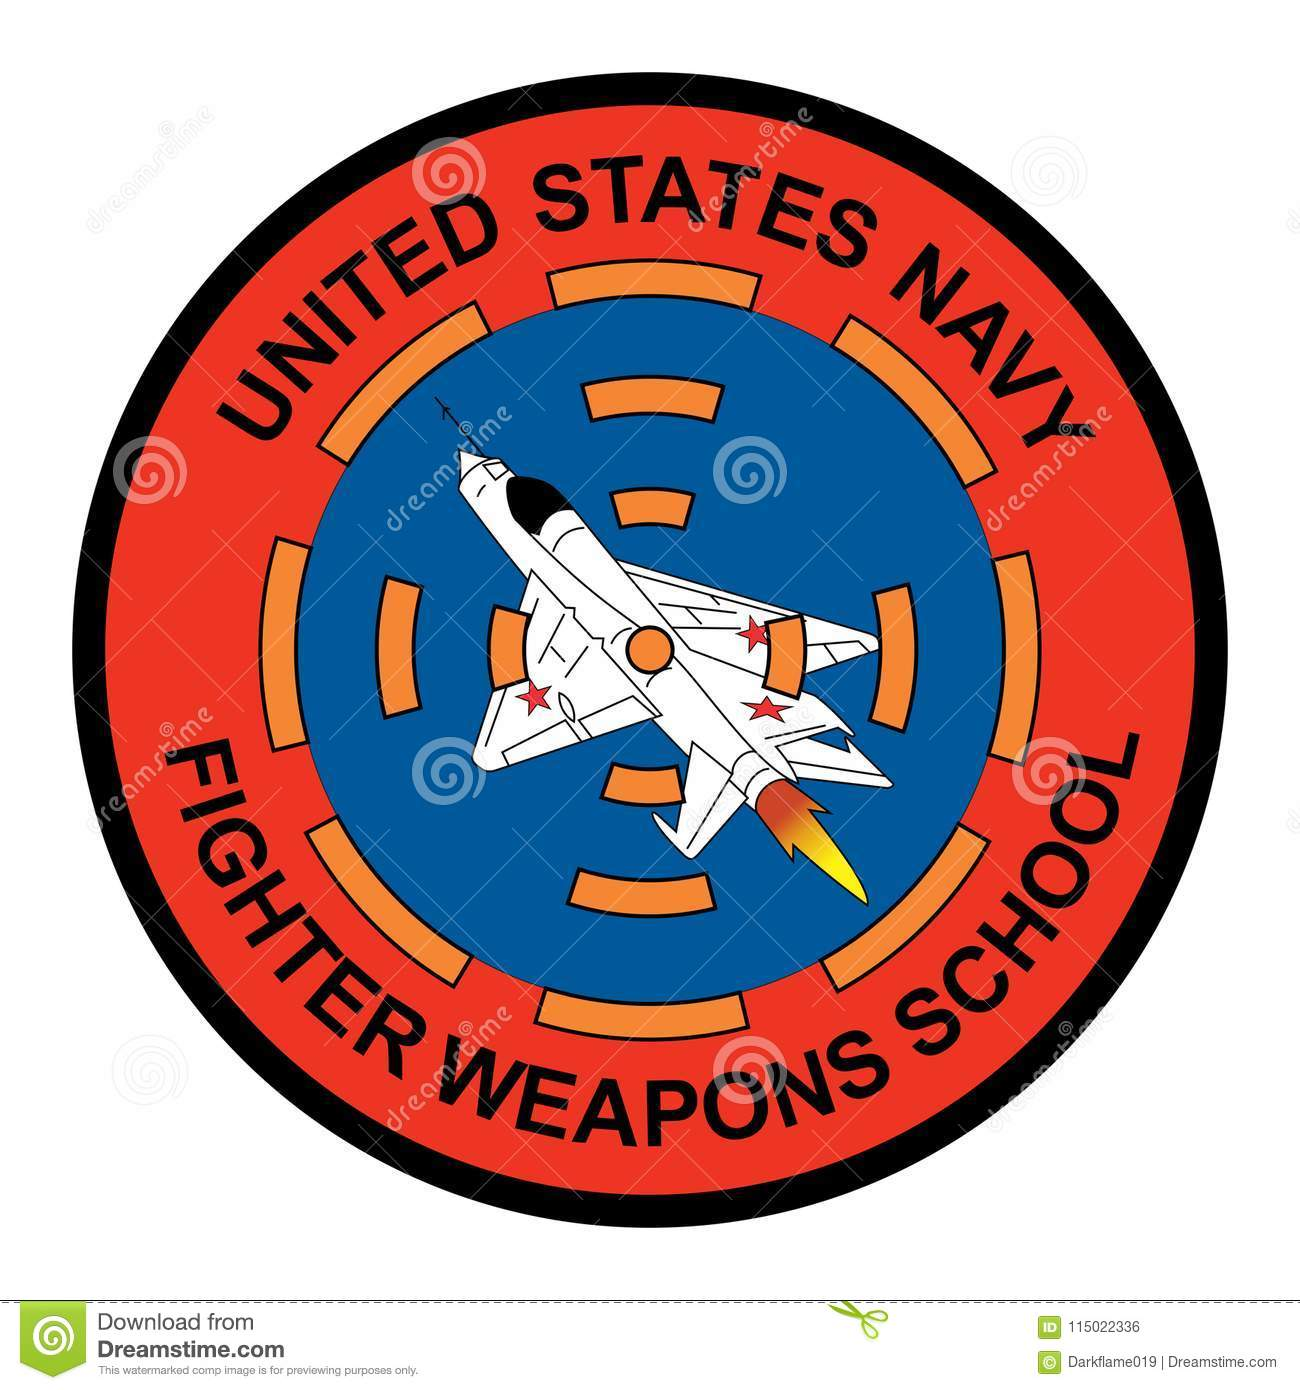 United States Navy Fighter Weapons School Logo Stock